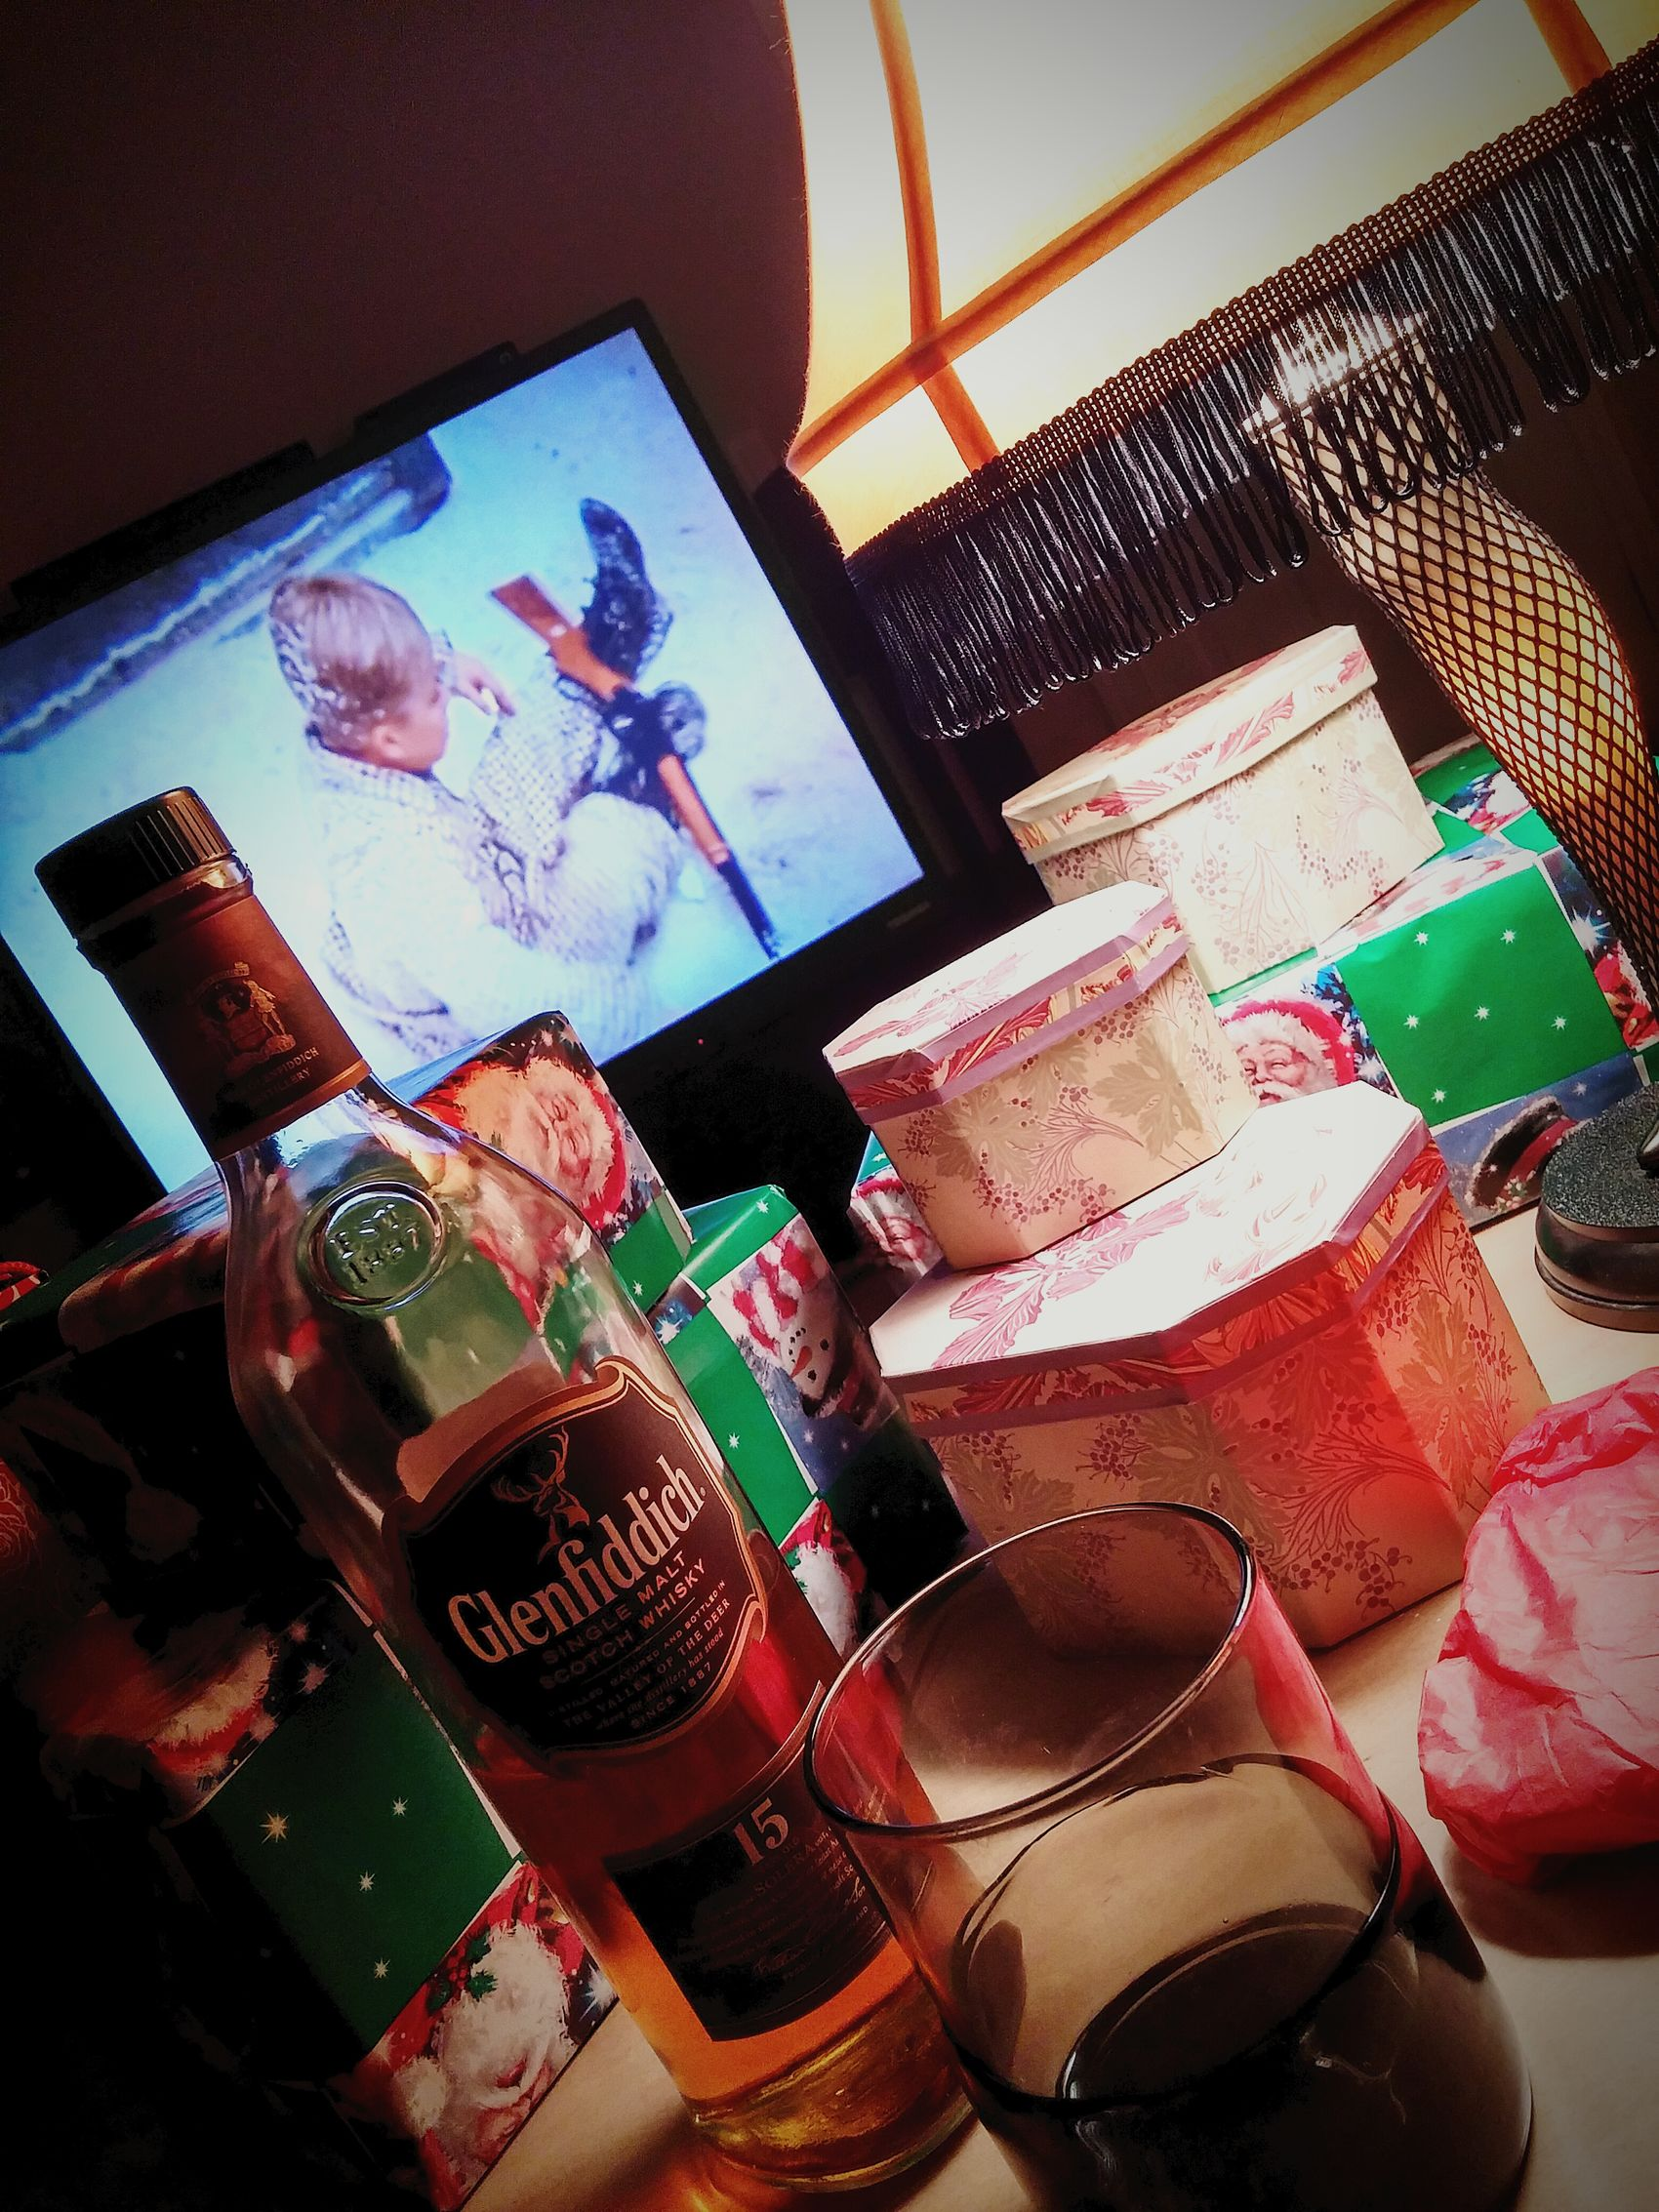 Same as every year...wrapping gifts into the early hours of Christmas and watching A Christmas Story...while enjoying a little yuletide cheer. Merry Christmas! Itsamajoraward Fragile Notafinger Youllshootyoureyeout Glenfiddich Scotch Whisky Myview Cheers